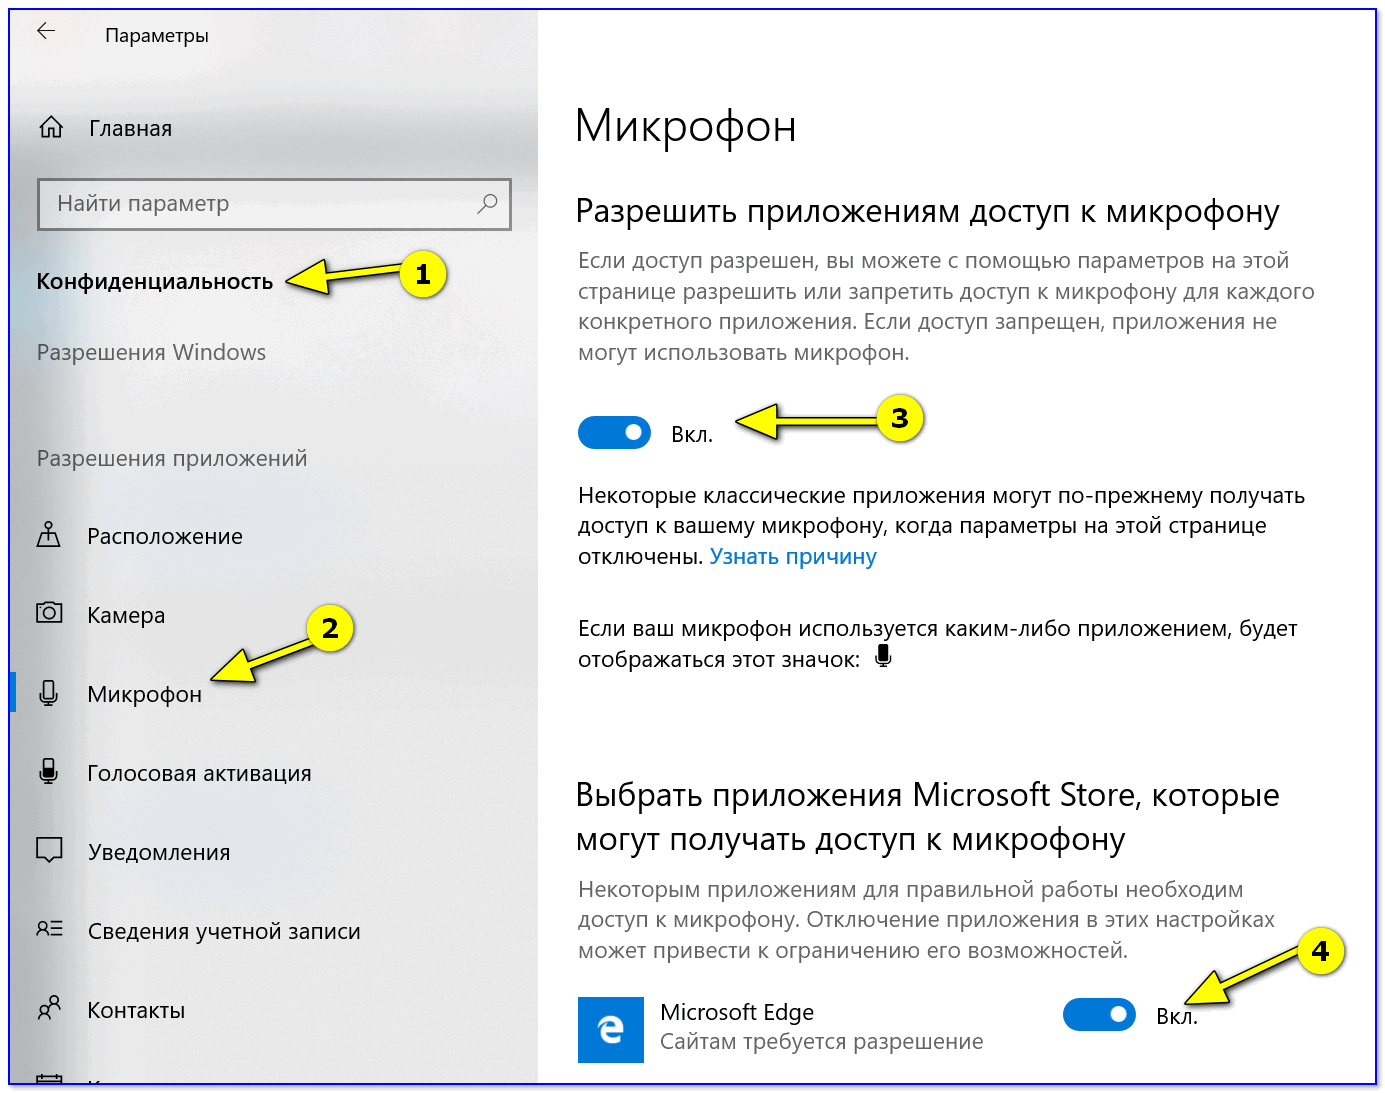 Доступ к микрофону / Windows 10